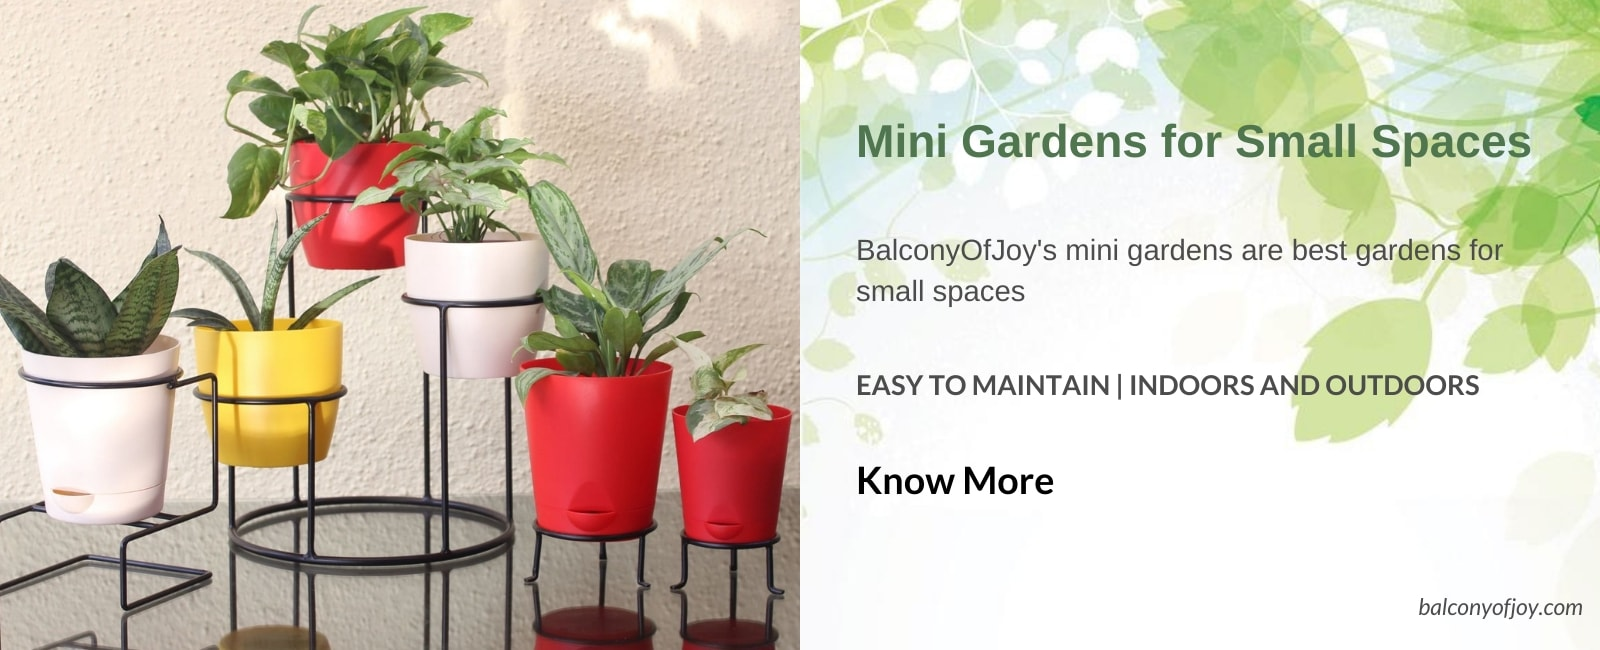 Mini garden for small spaces like balconies and indoors by BalconyOfJoy